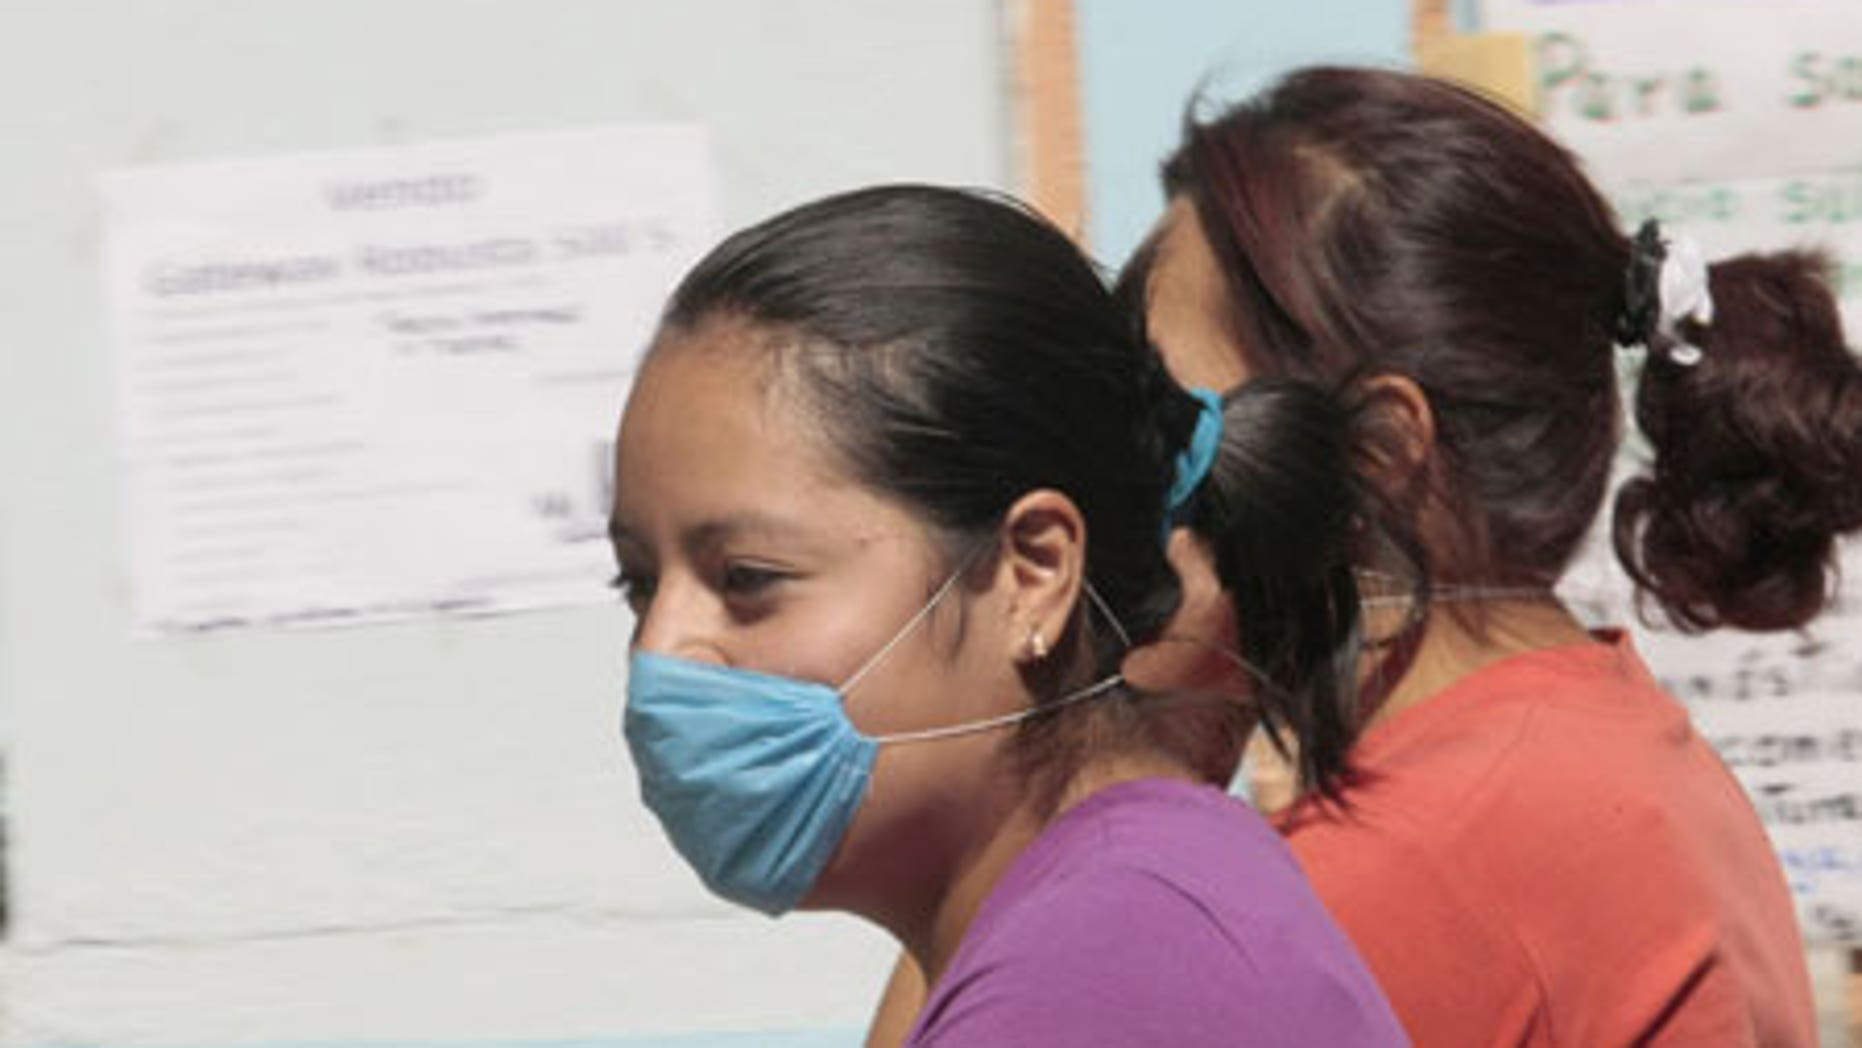 April 24, 2009: Women wear masks as they walk past a closed school in Mexico City.